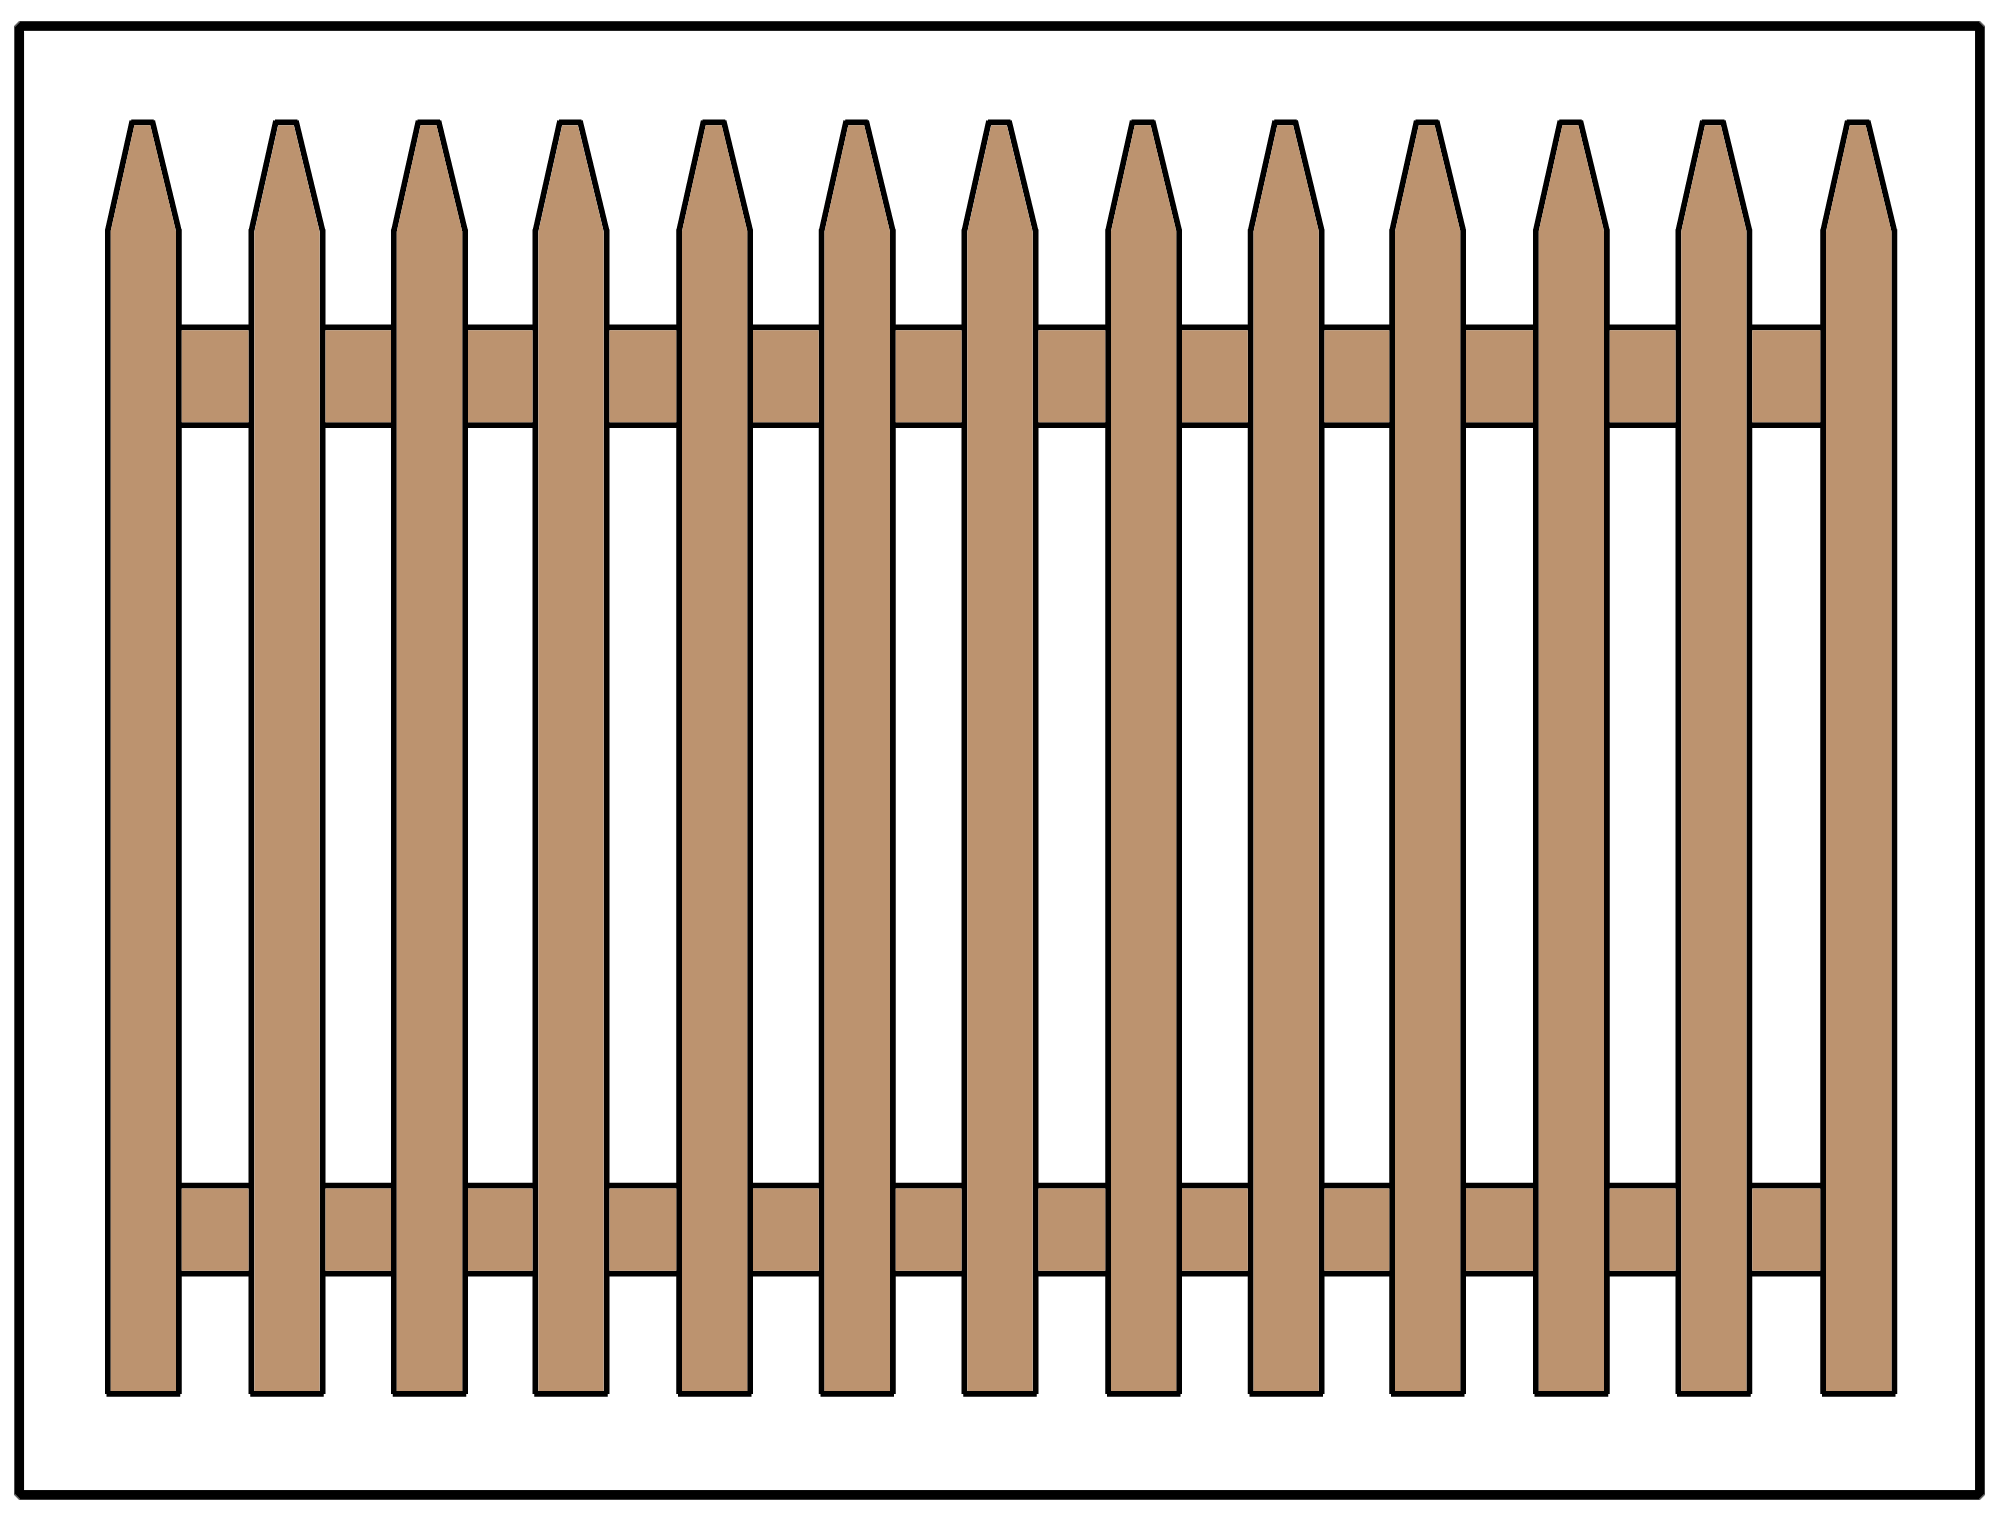 Picket fence design using common pickets